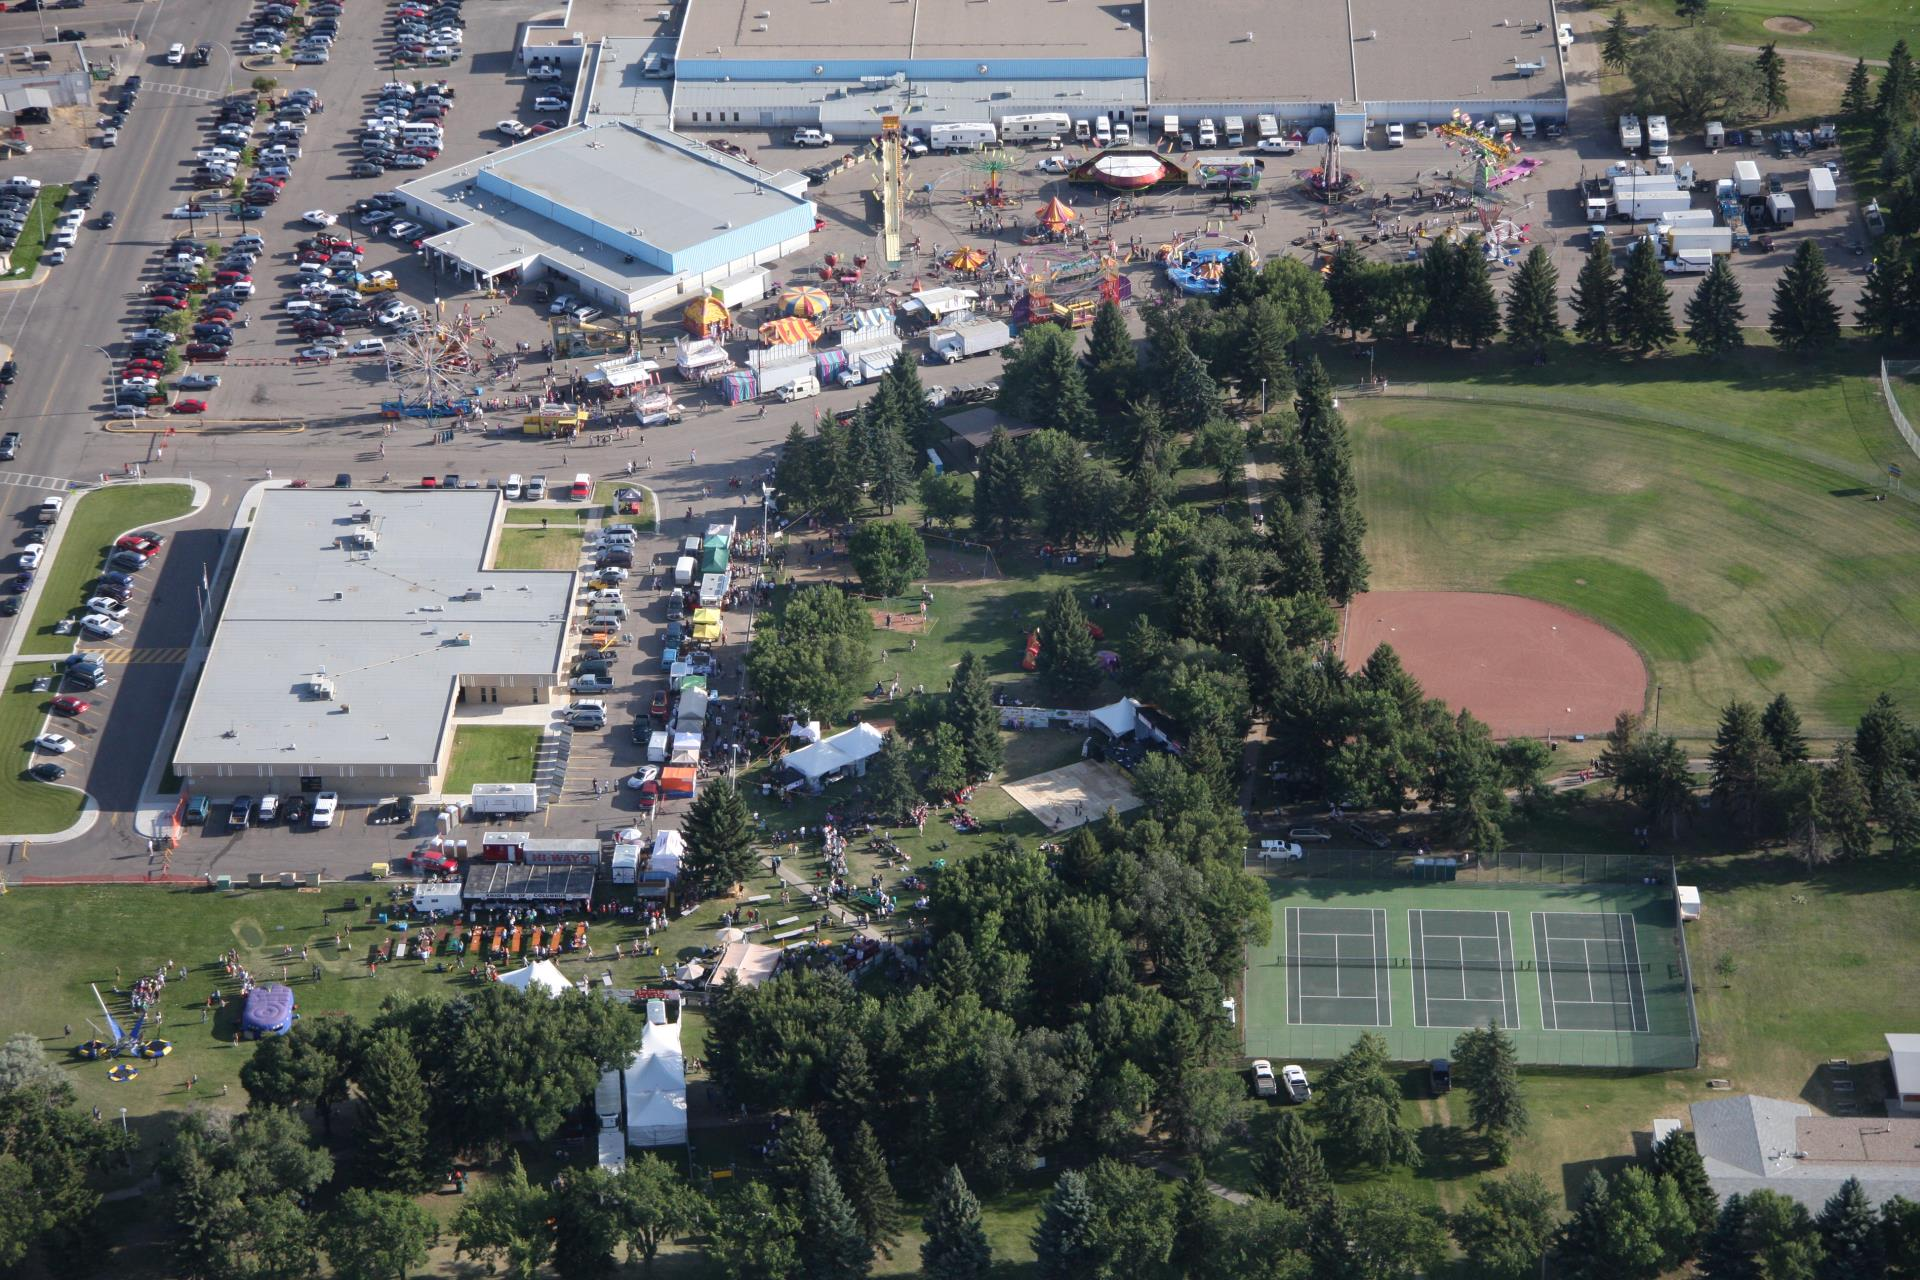 Aerial View of the Park and Midway 2009